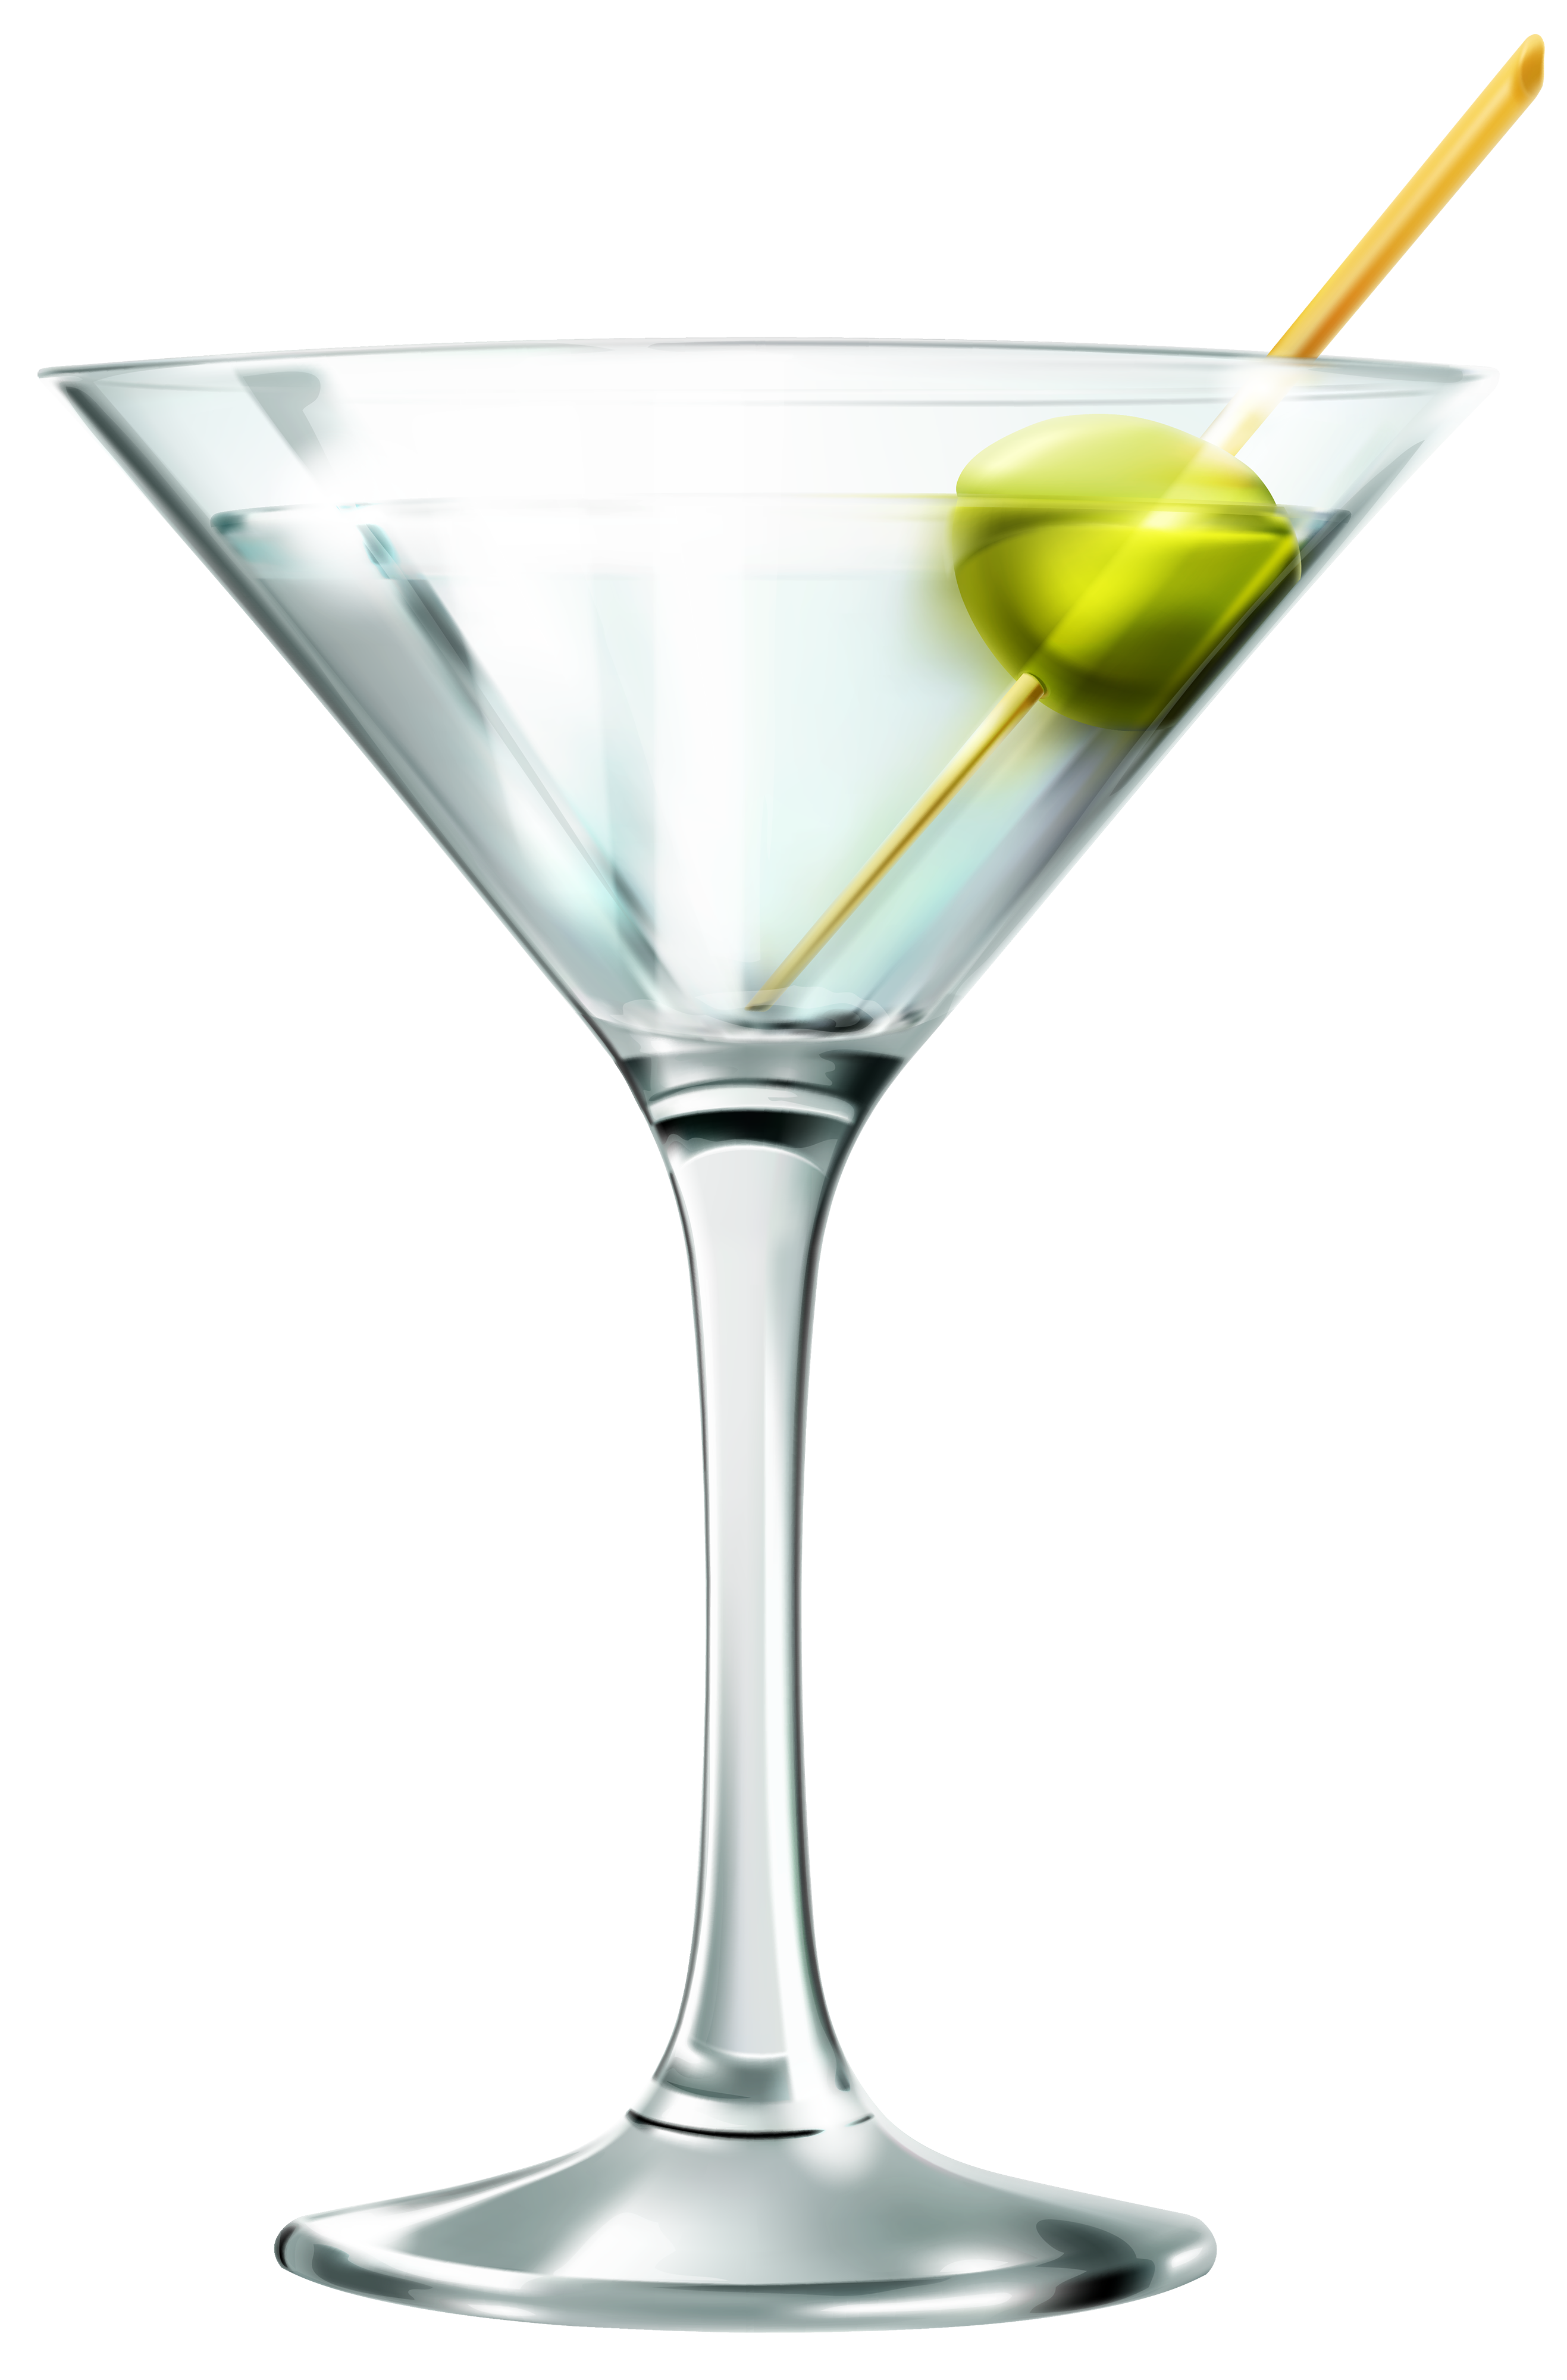 Glass clipart martini glass. Transparent png best web